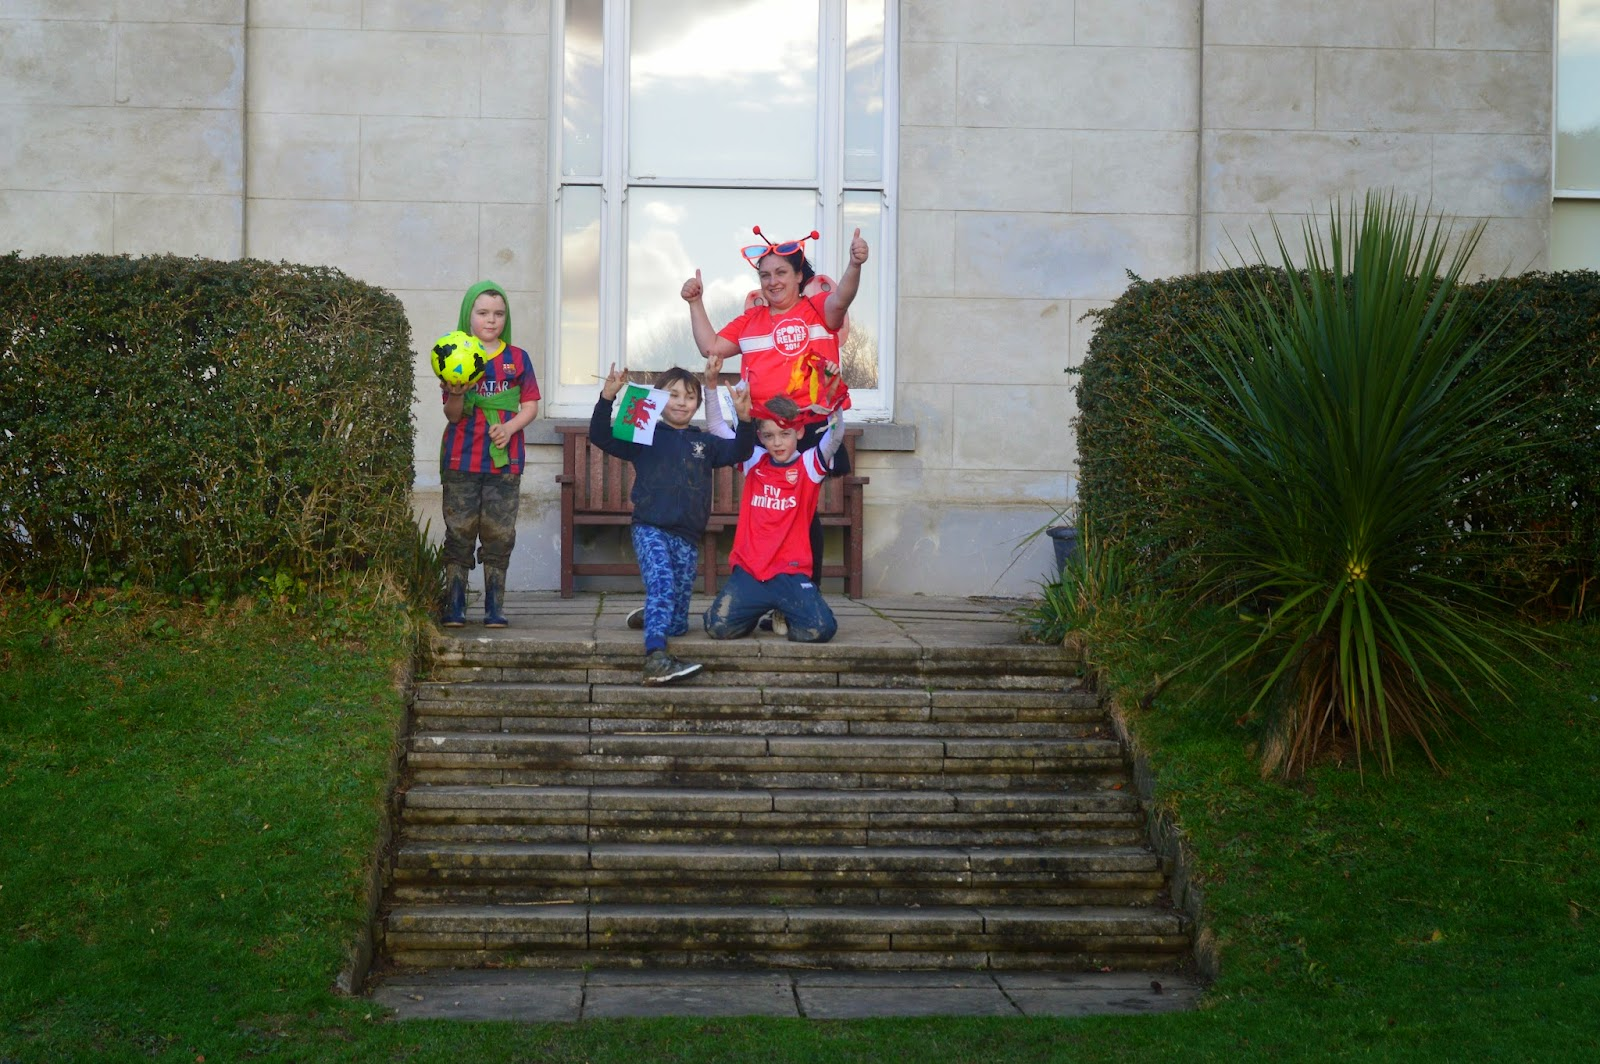 , Team Honk Relay at Scolton Manor meets Country Kids